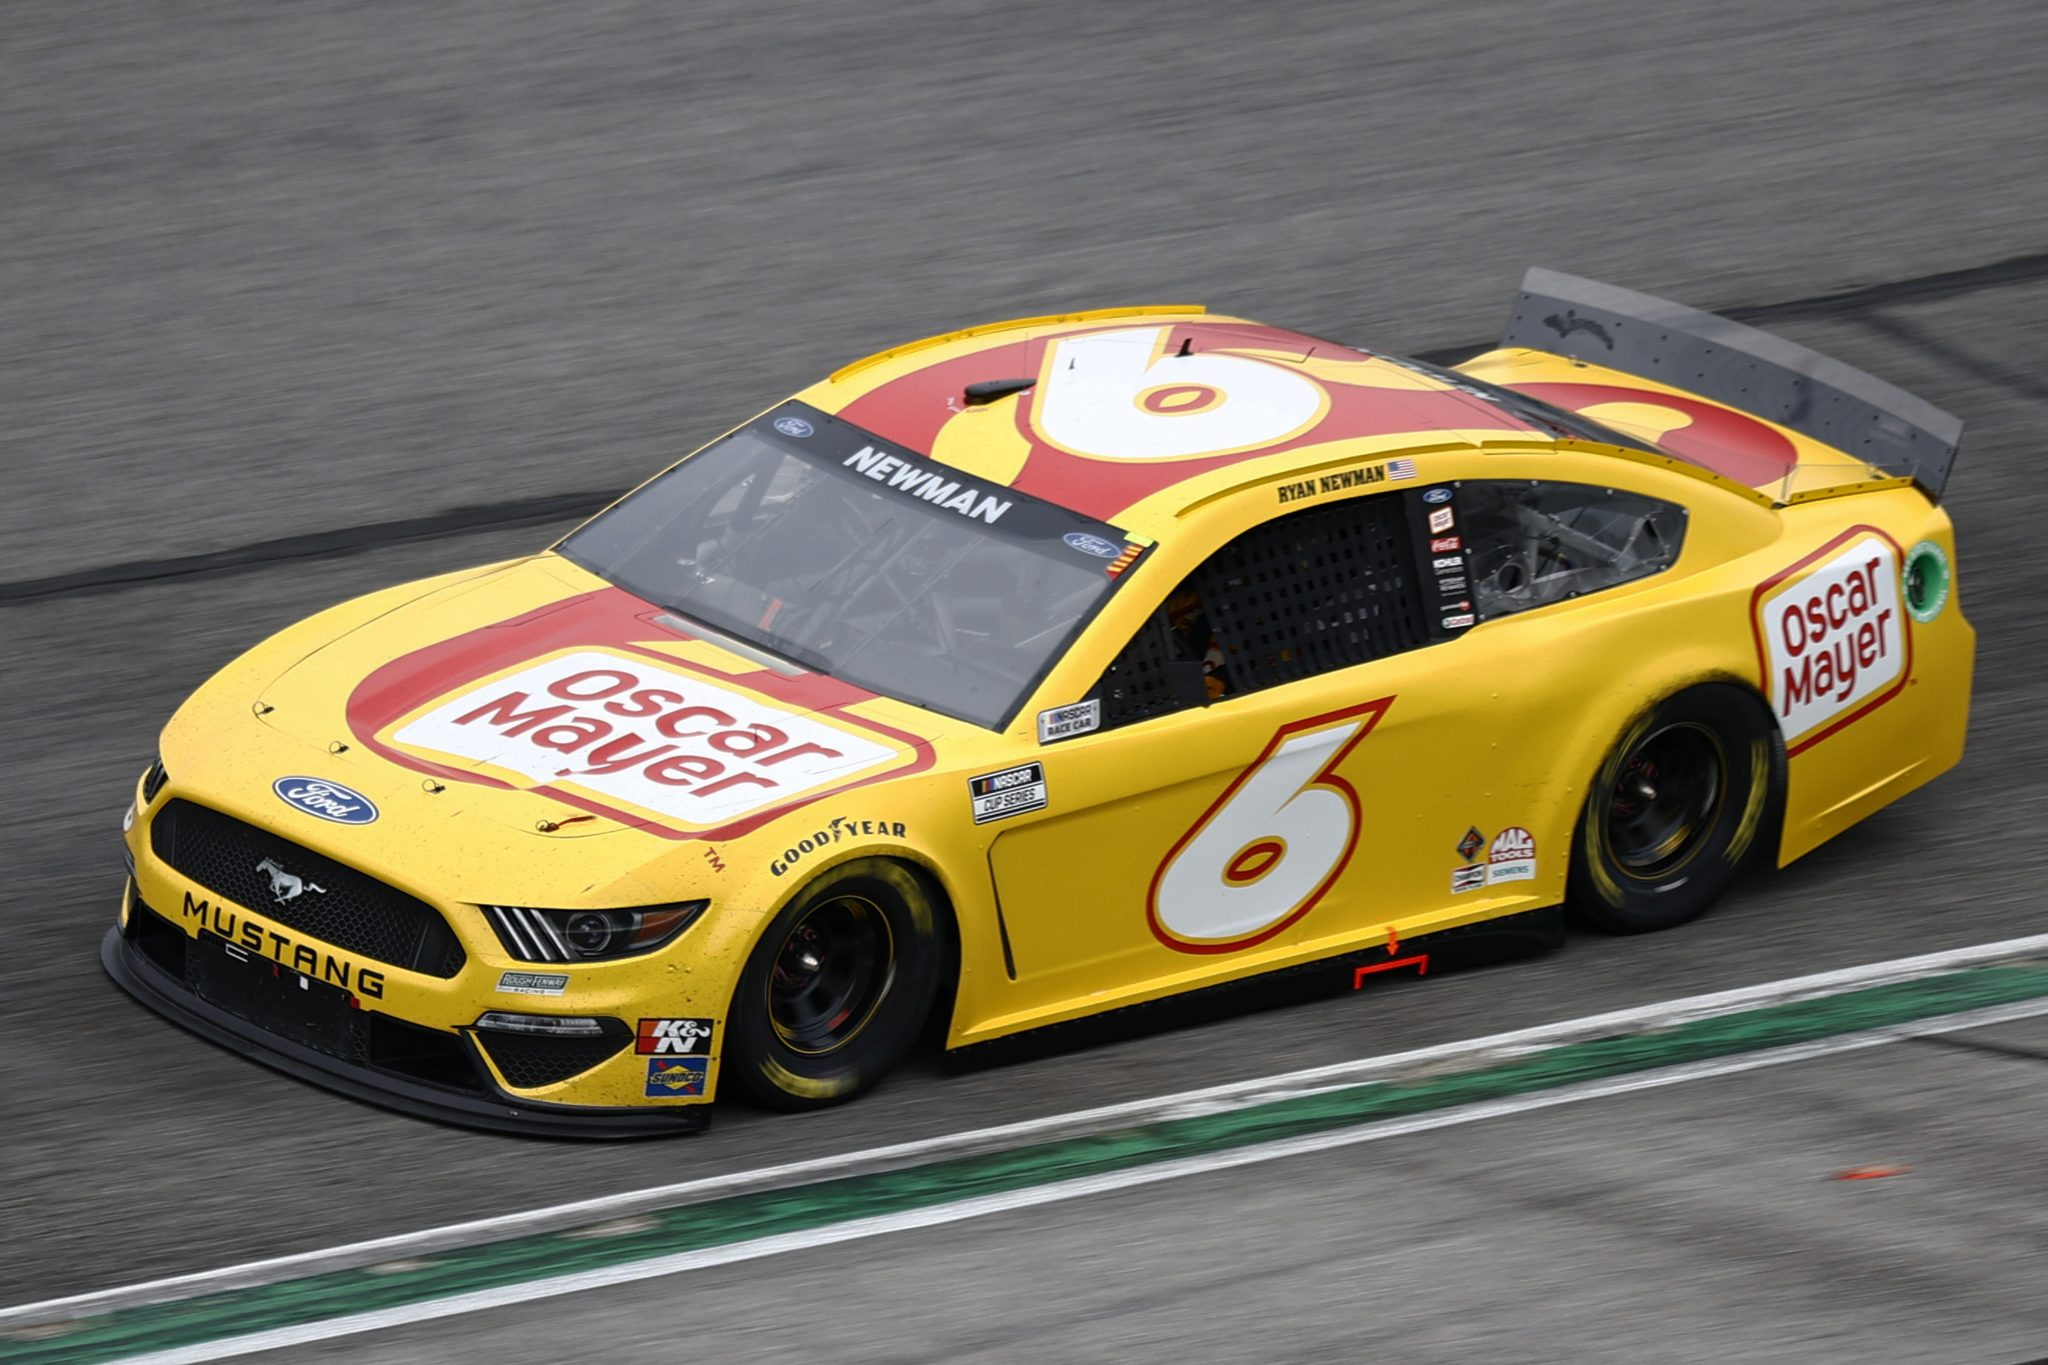 HAMPTON, GEORGIA - JULY 11: Ryan Newman, driver of the #6 Oscar Mayer Ford, drives during the NASCAR Cup Series Quaker State 400 presented by Walmart at Atlanta Motor Speedway on July 11, 2021 in Hampton, Georgia. (Photo by Jared C. Tilton/Getty Images) | Getty Images